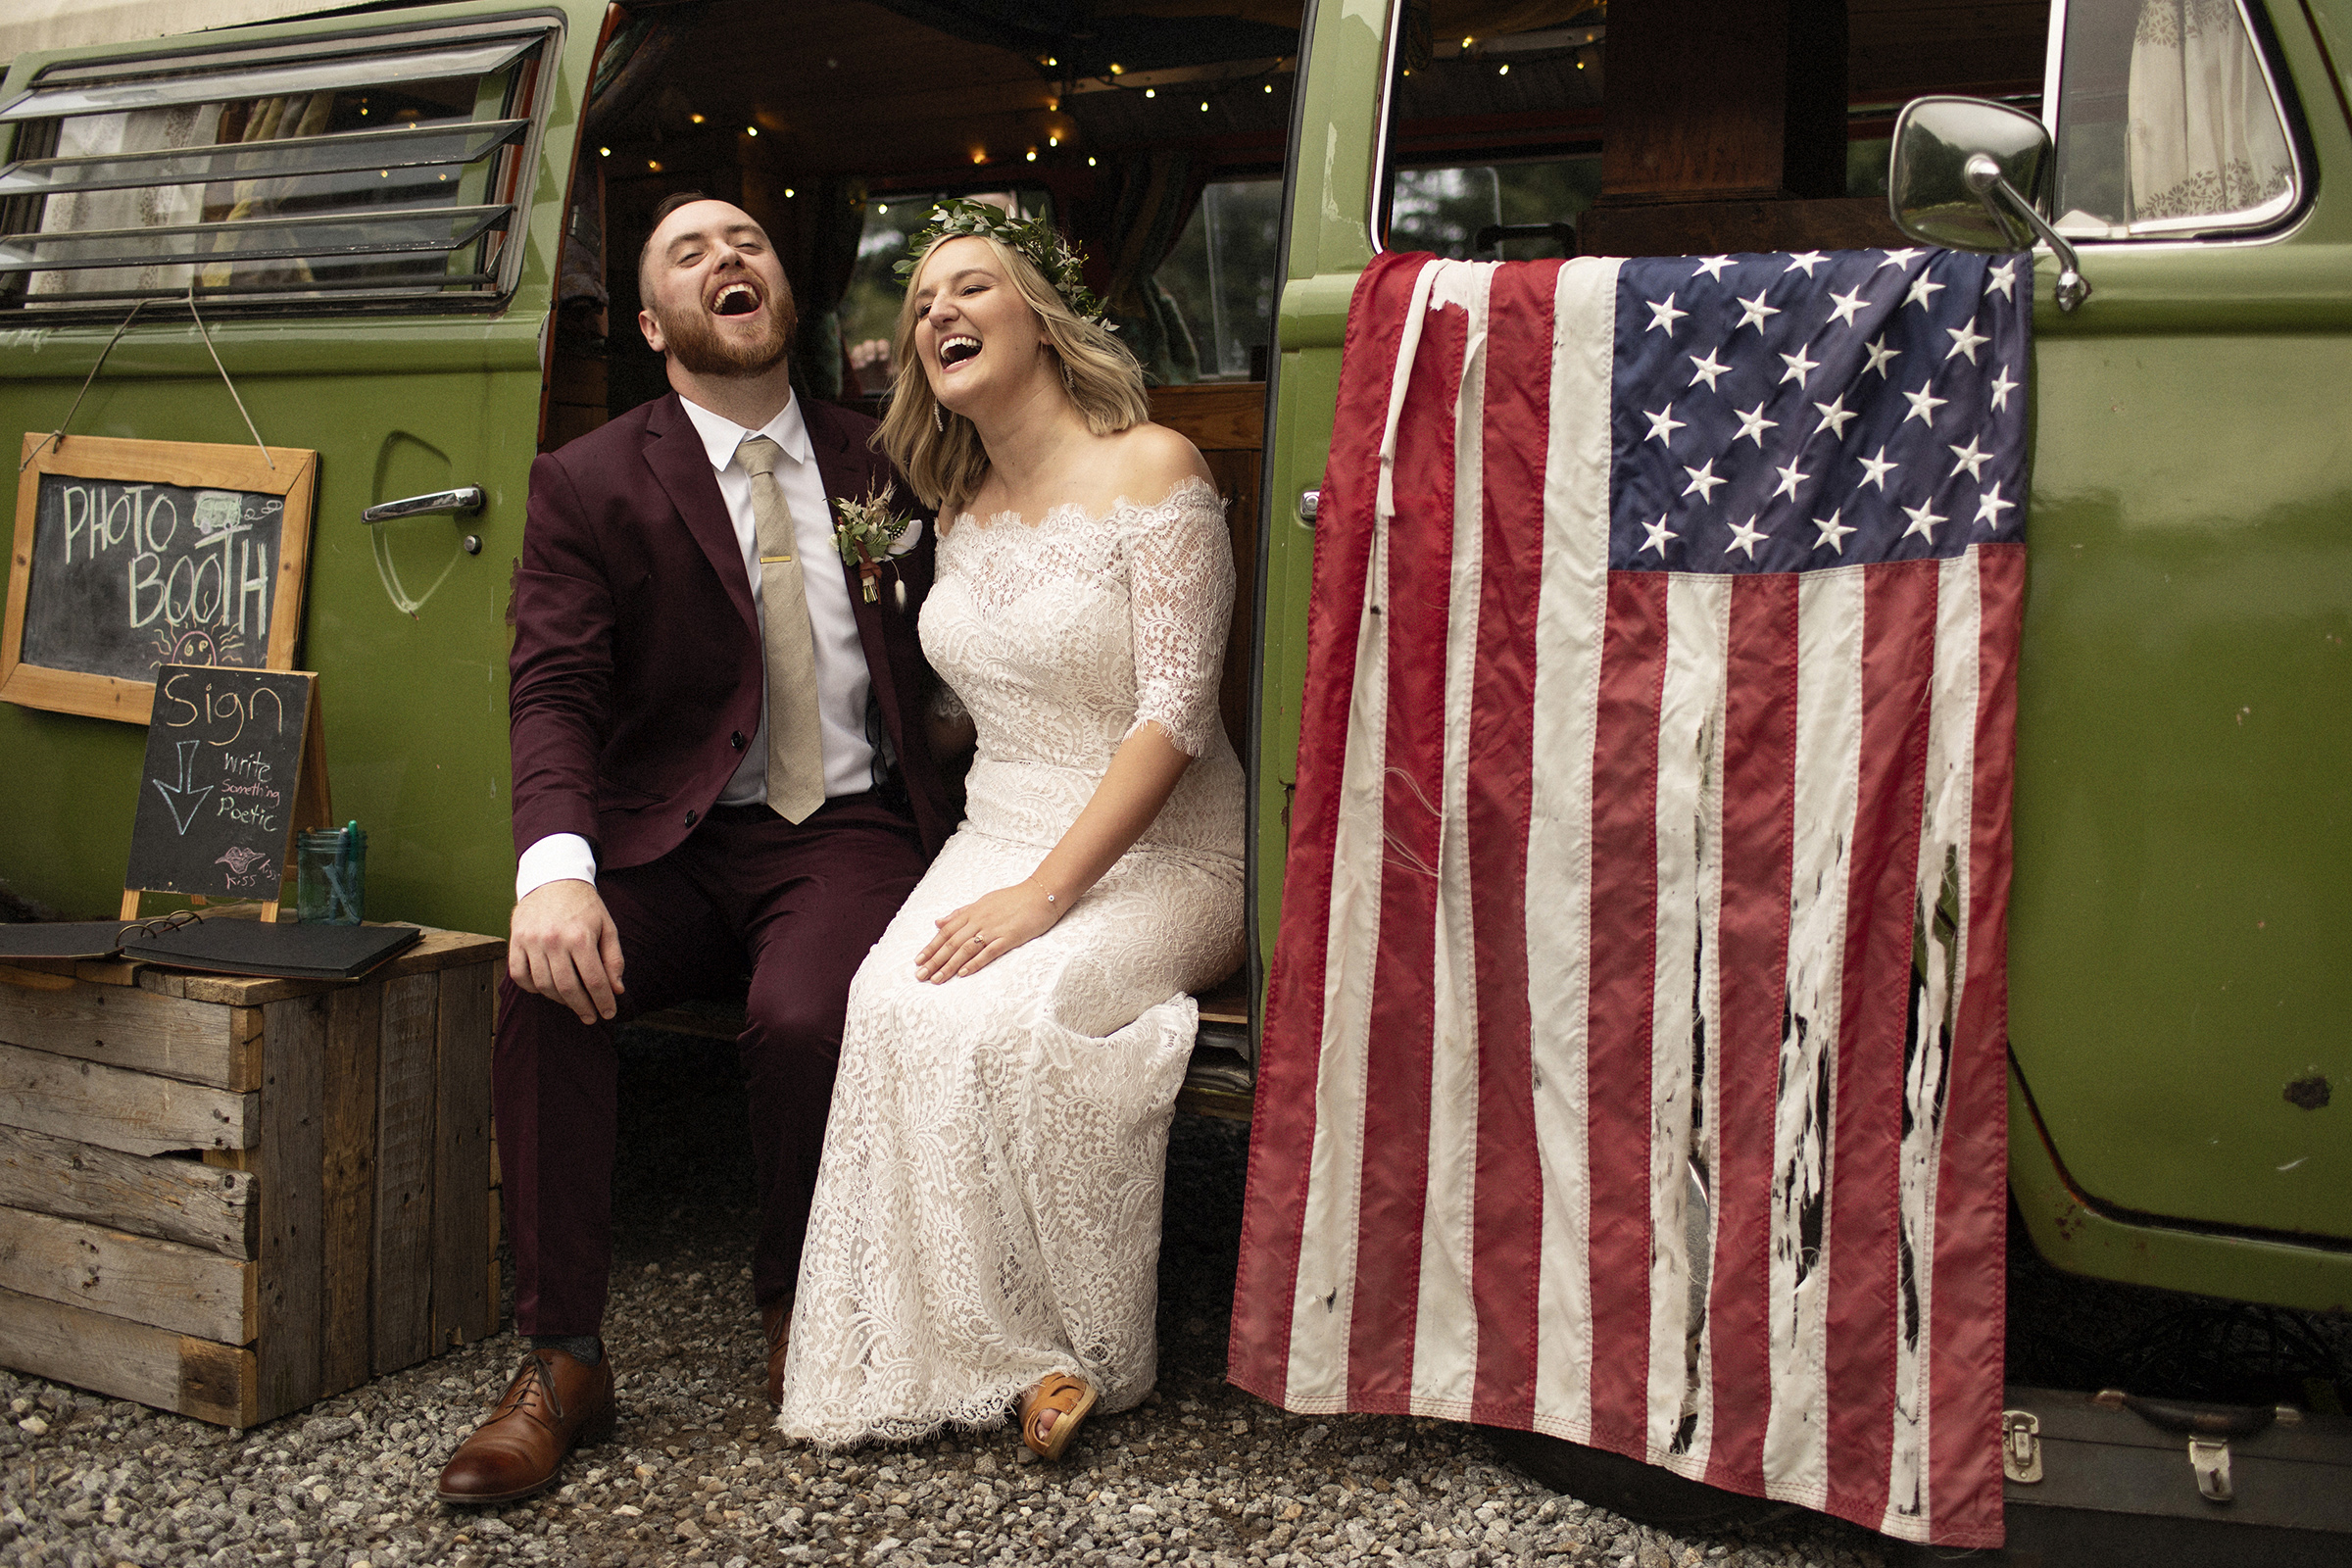 couple-in-vintage-vw-photo-booth-joshua-behan-photography